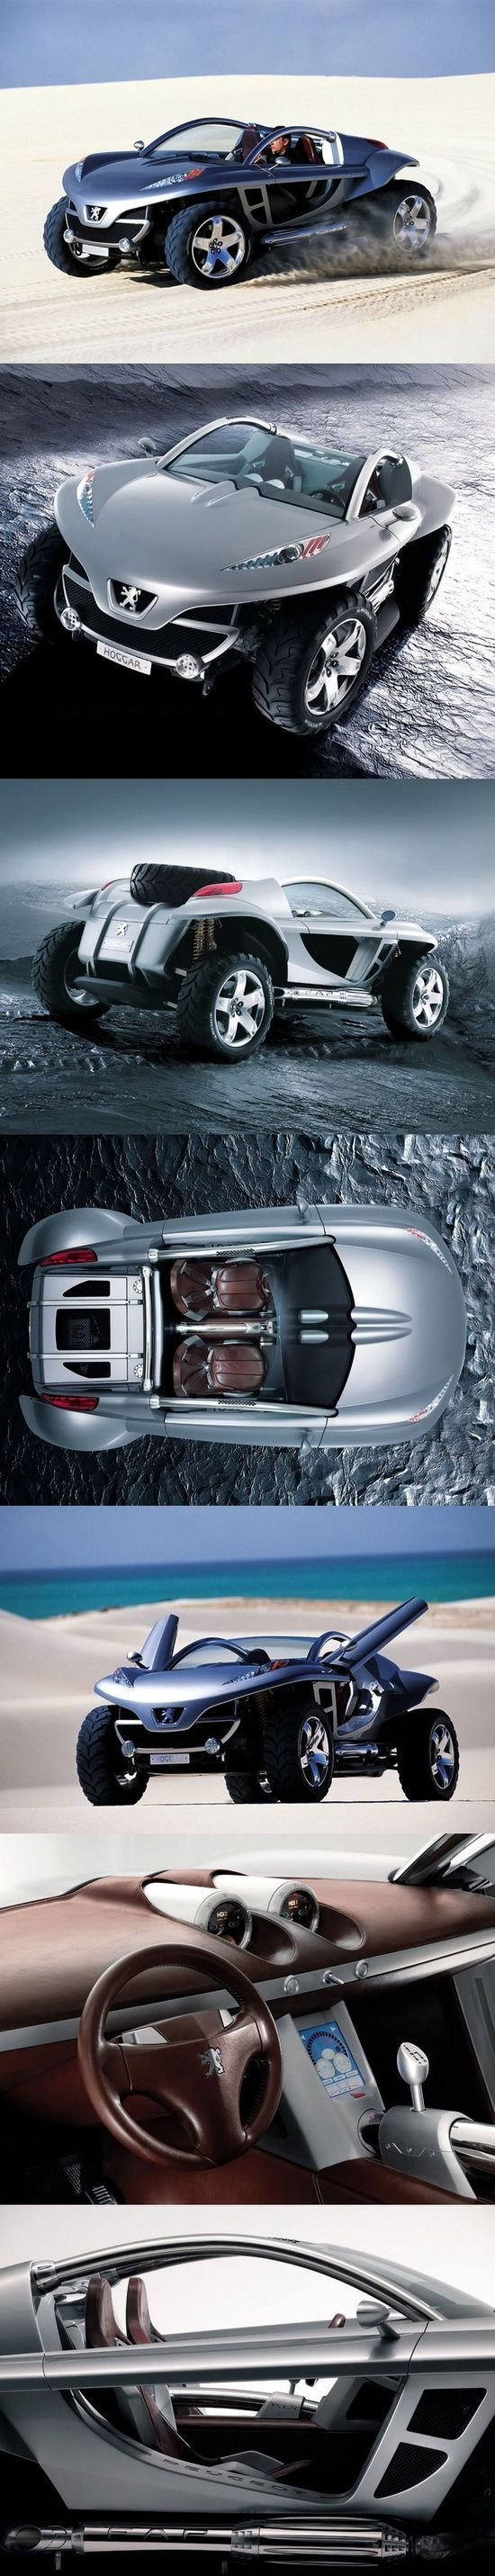 """ALL NEW """" 2017 Peugeot Hoggar Concept car"""", 2017 Concept Car Photos and Images, 2017 Cars"""